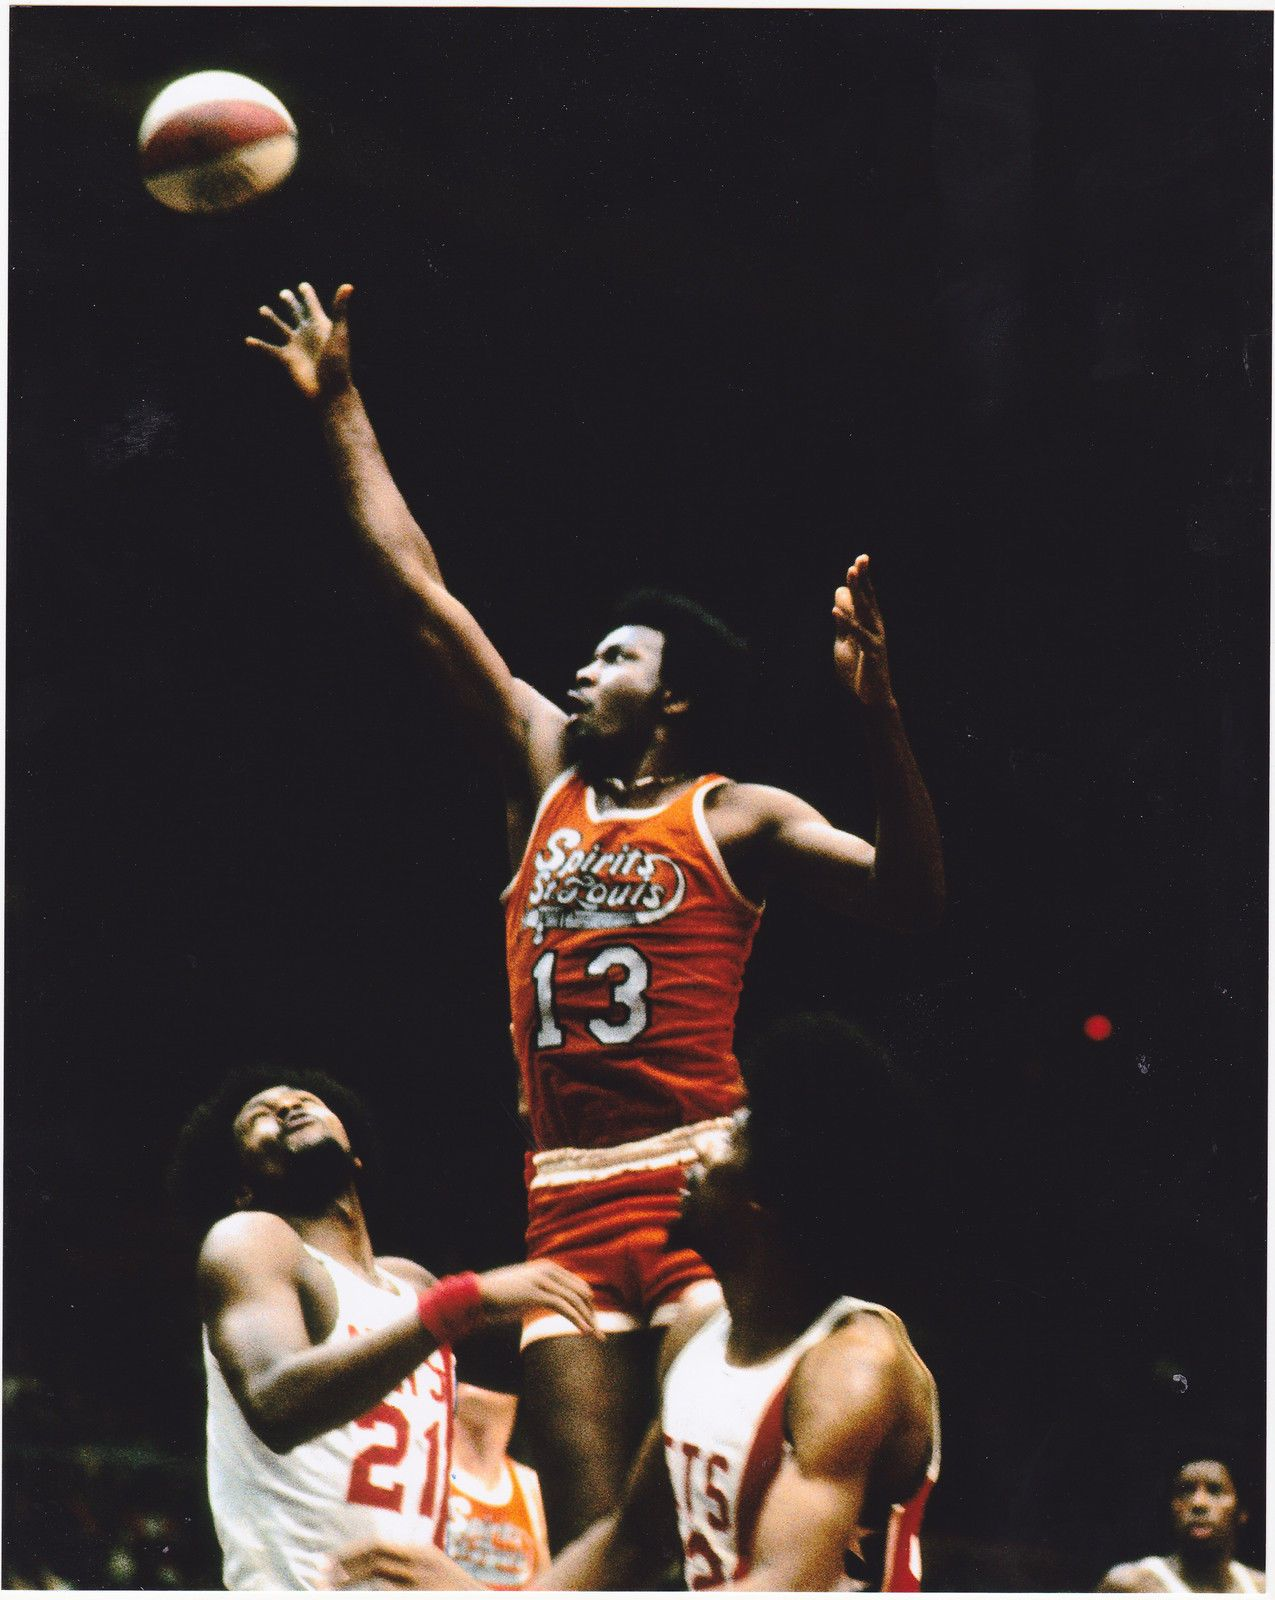 MOSES MALONE SPIRITS OF ST. LOUIS ABA VINTAGE COLOR 8x10 PHOTO ... 89f6cfa6a